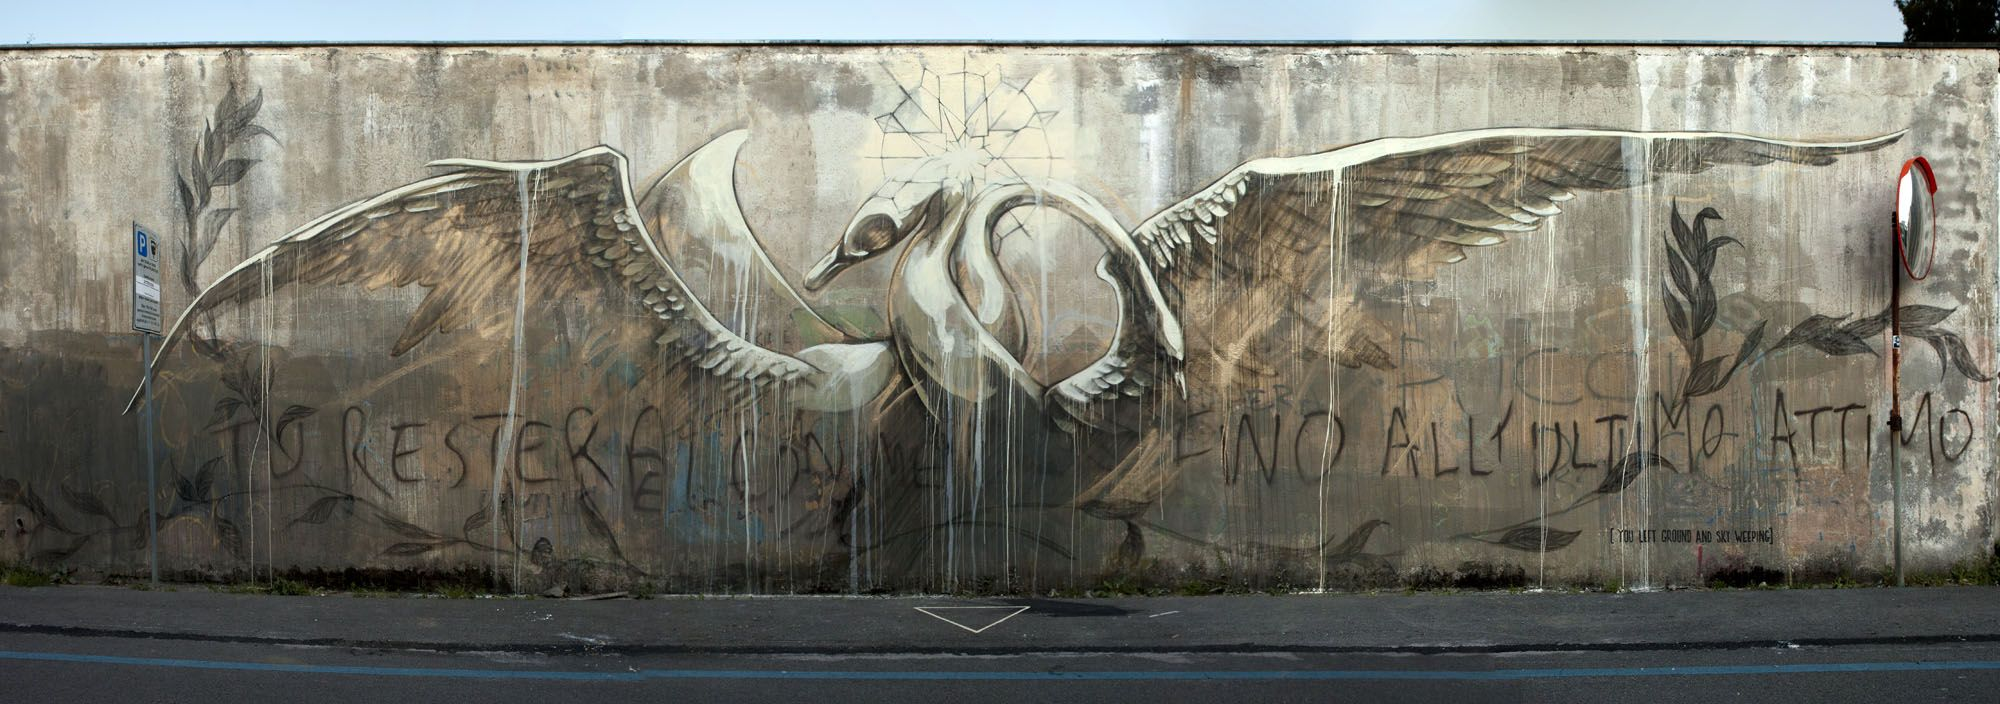 Faith47 from South Africa recently visited Gaeta, Italy to participate in the Memories Urbane Festival the art is called Will You Stay With Me